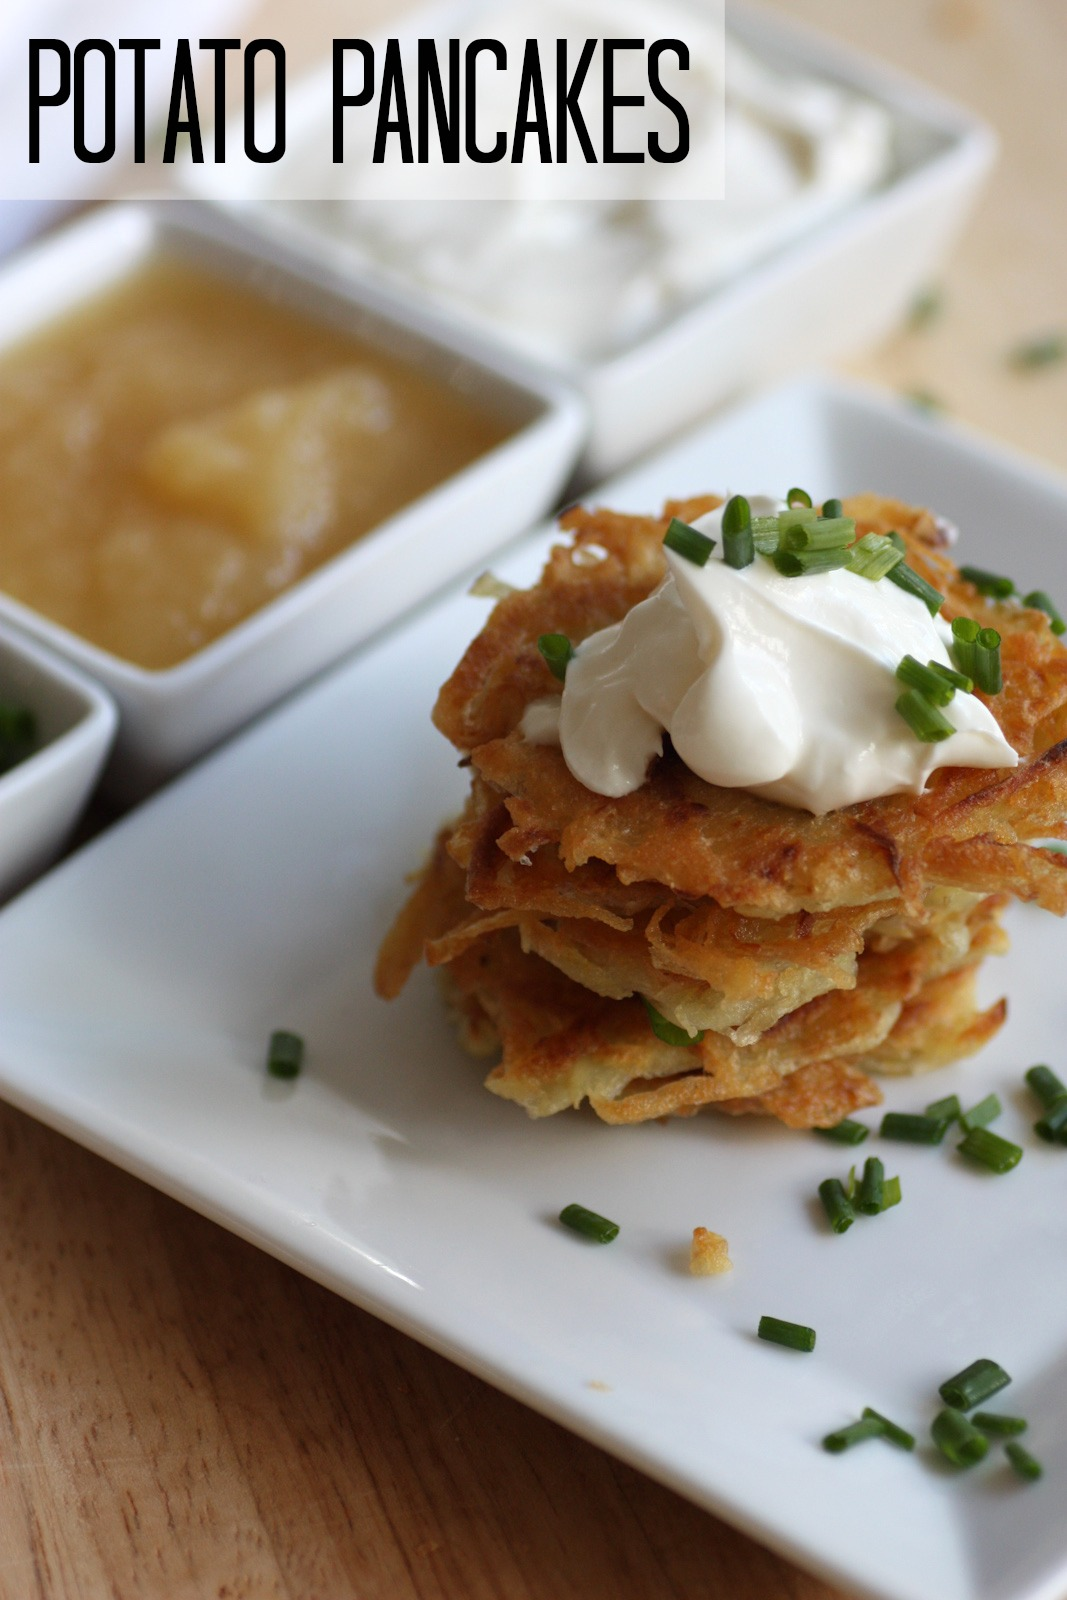 potato-pancakes-recipe-latkes-title.jpg